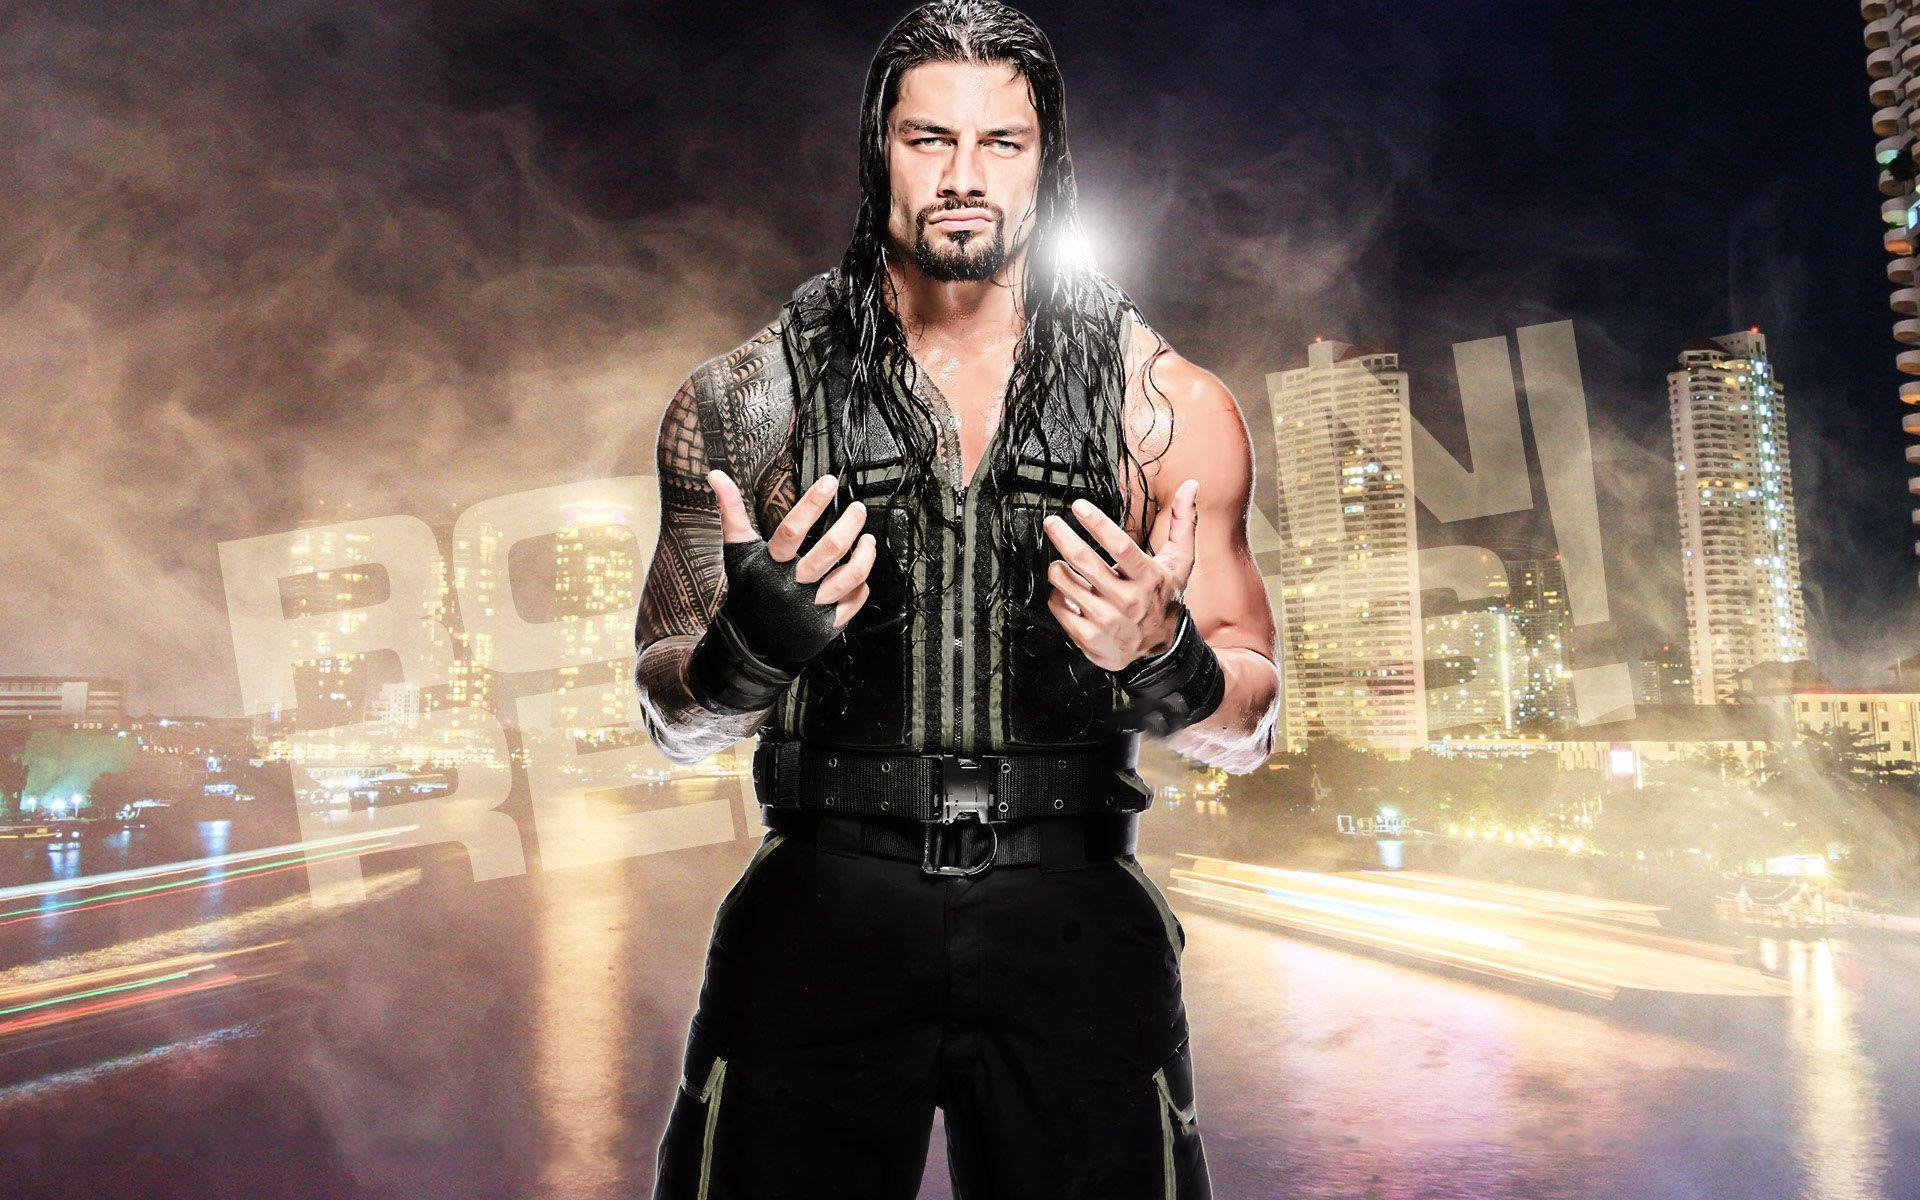 Roman Reigns Wallpapers 1920x1200